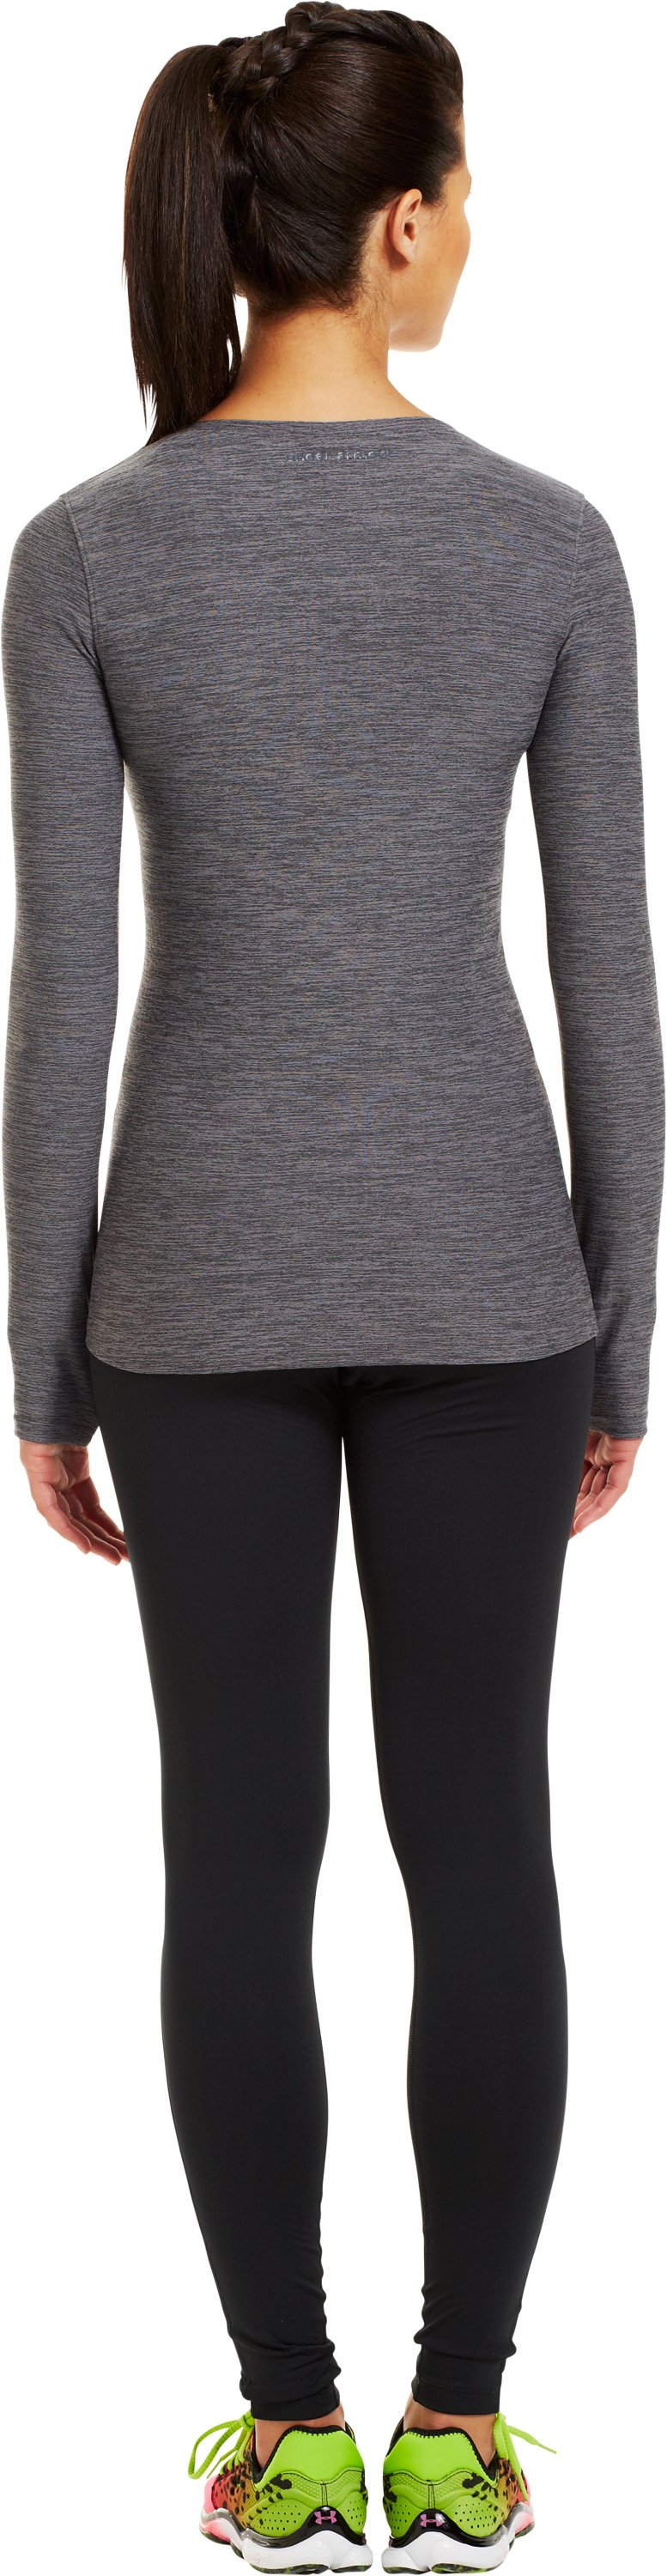 Women's ColdGear® Infrared V-Neck Long Sleeve, Carbon Heather, Back